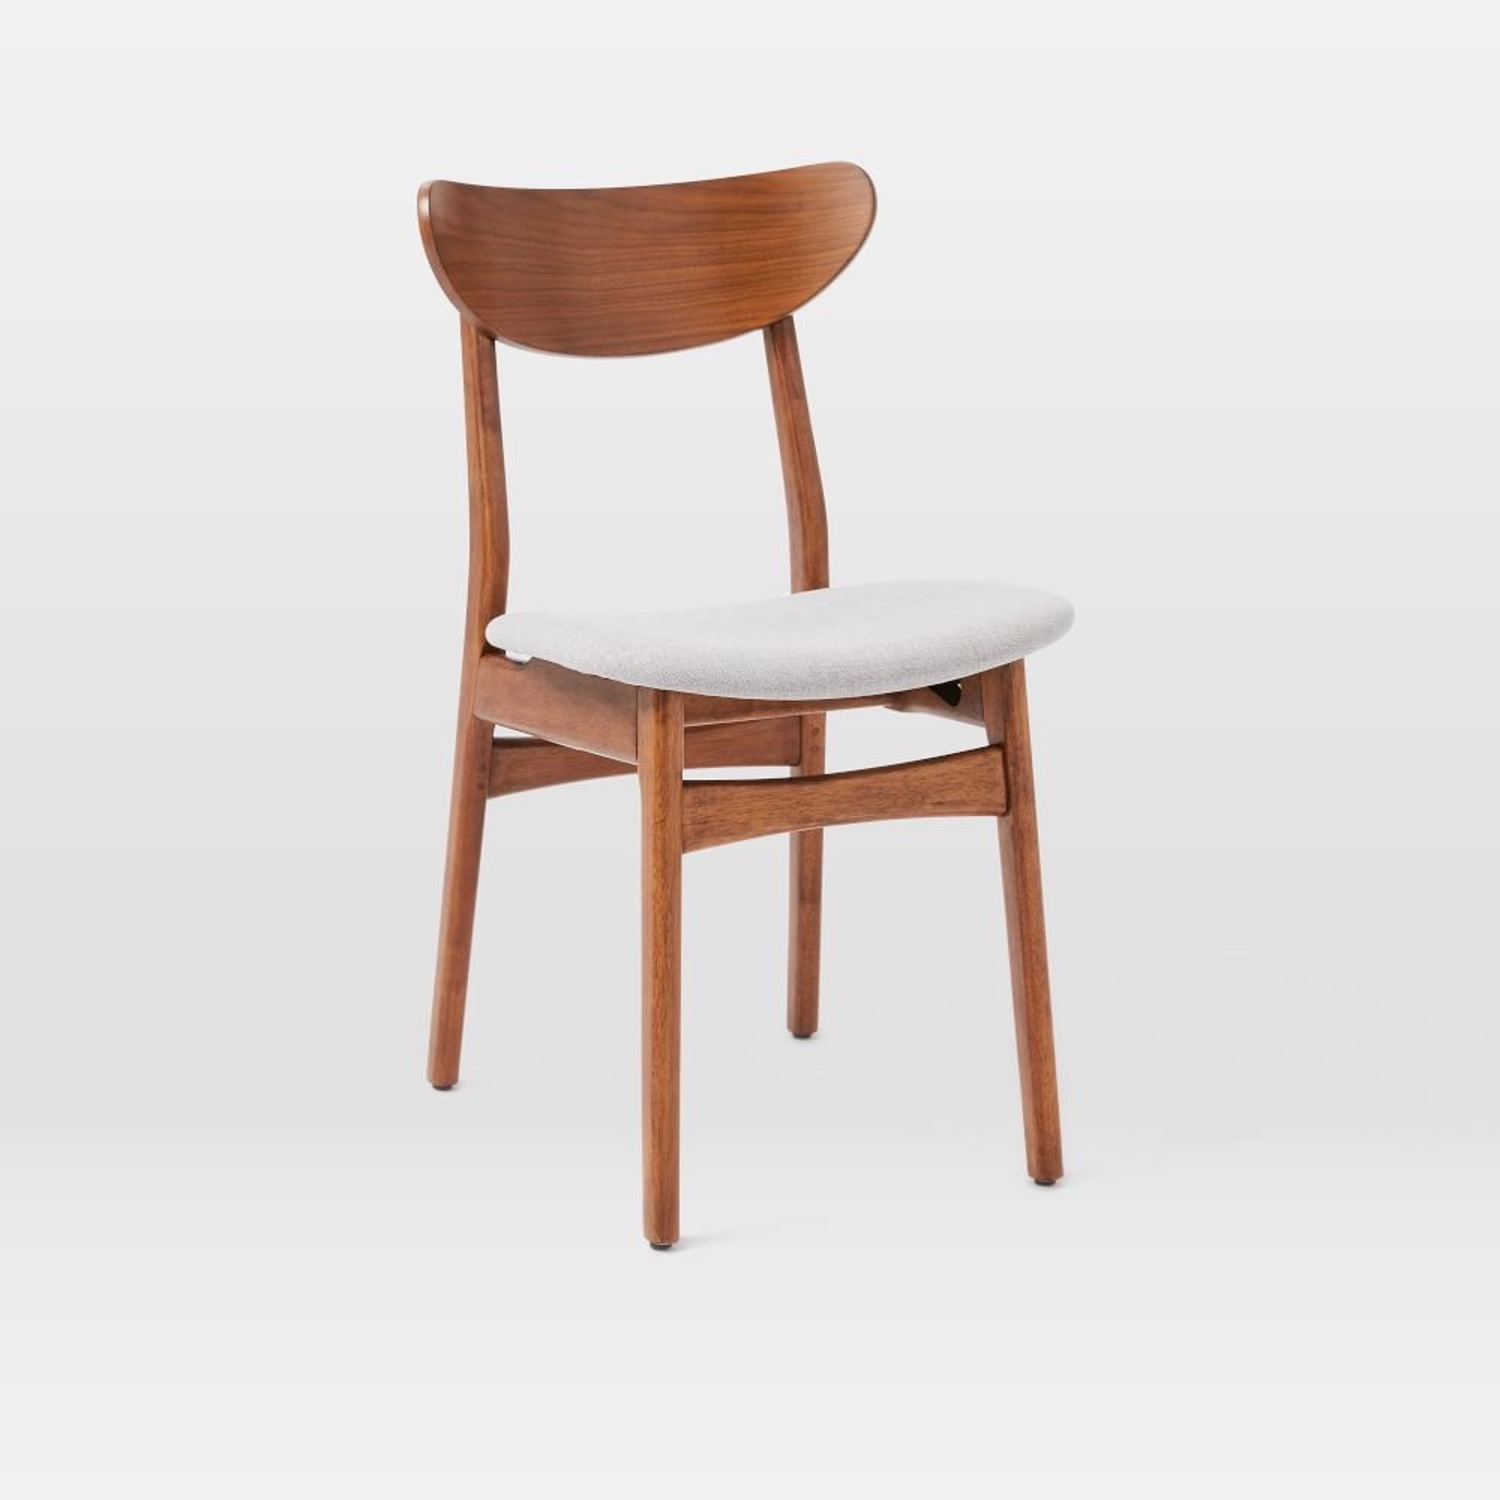 West Elm Classic Cafe Upholstered Dining Chair - image-1